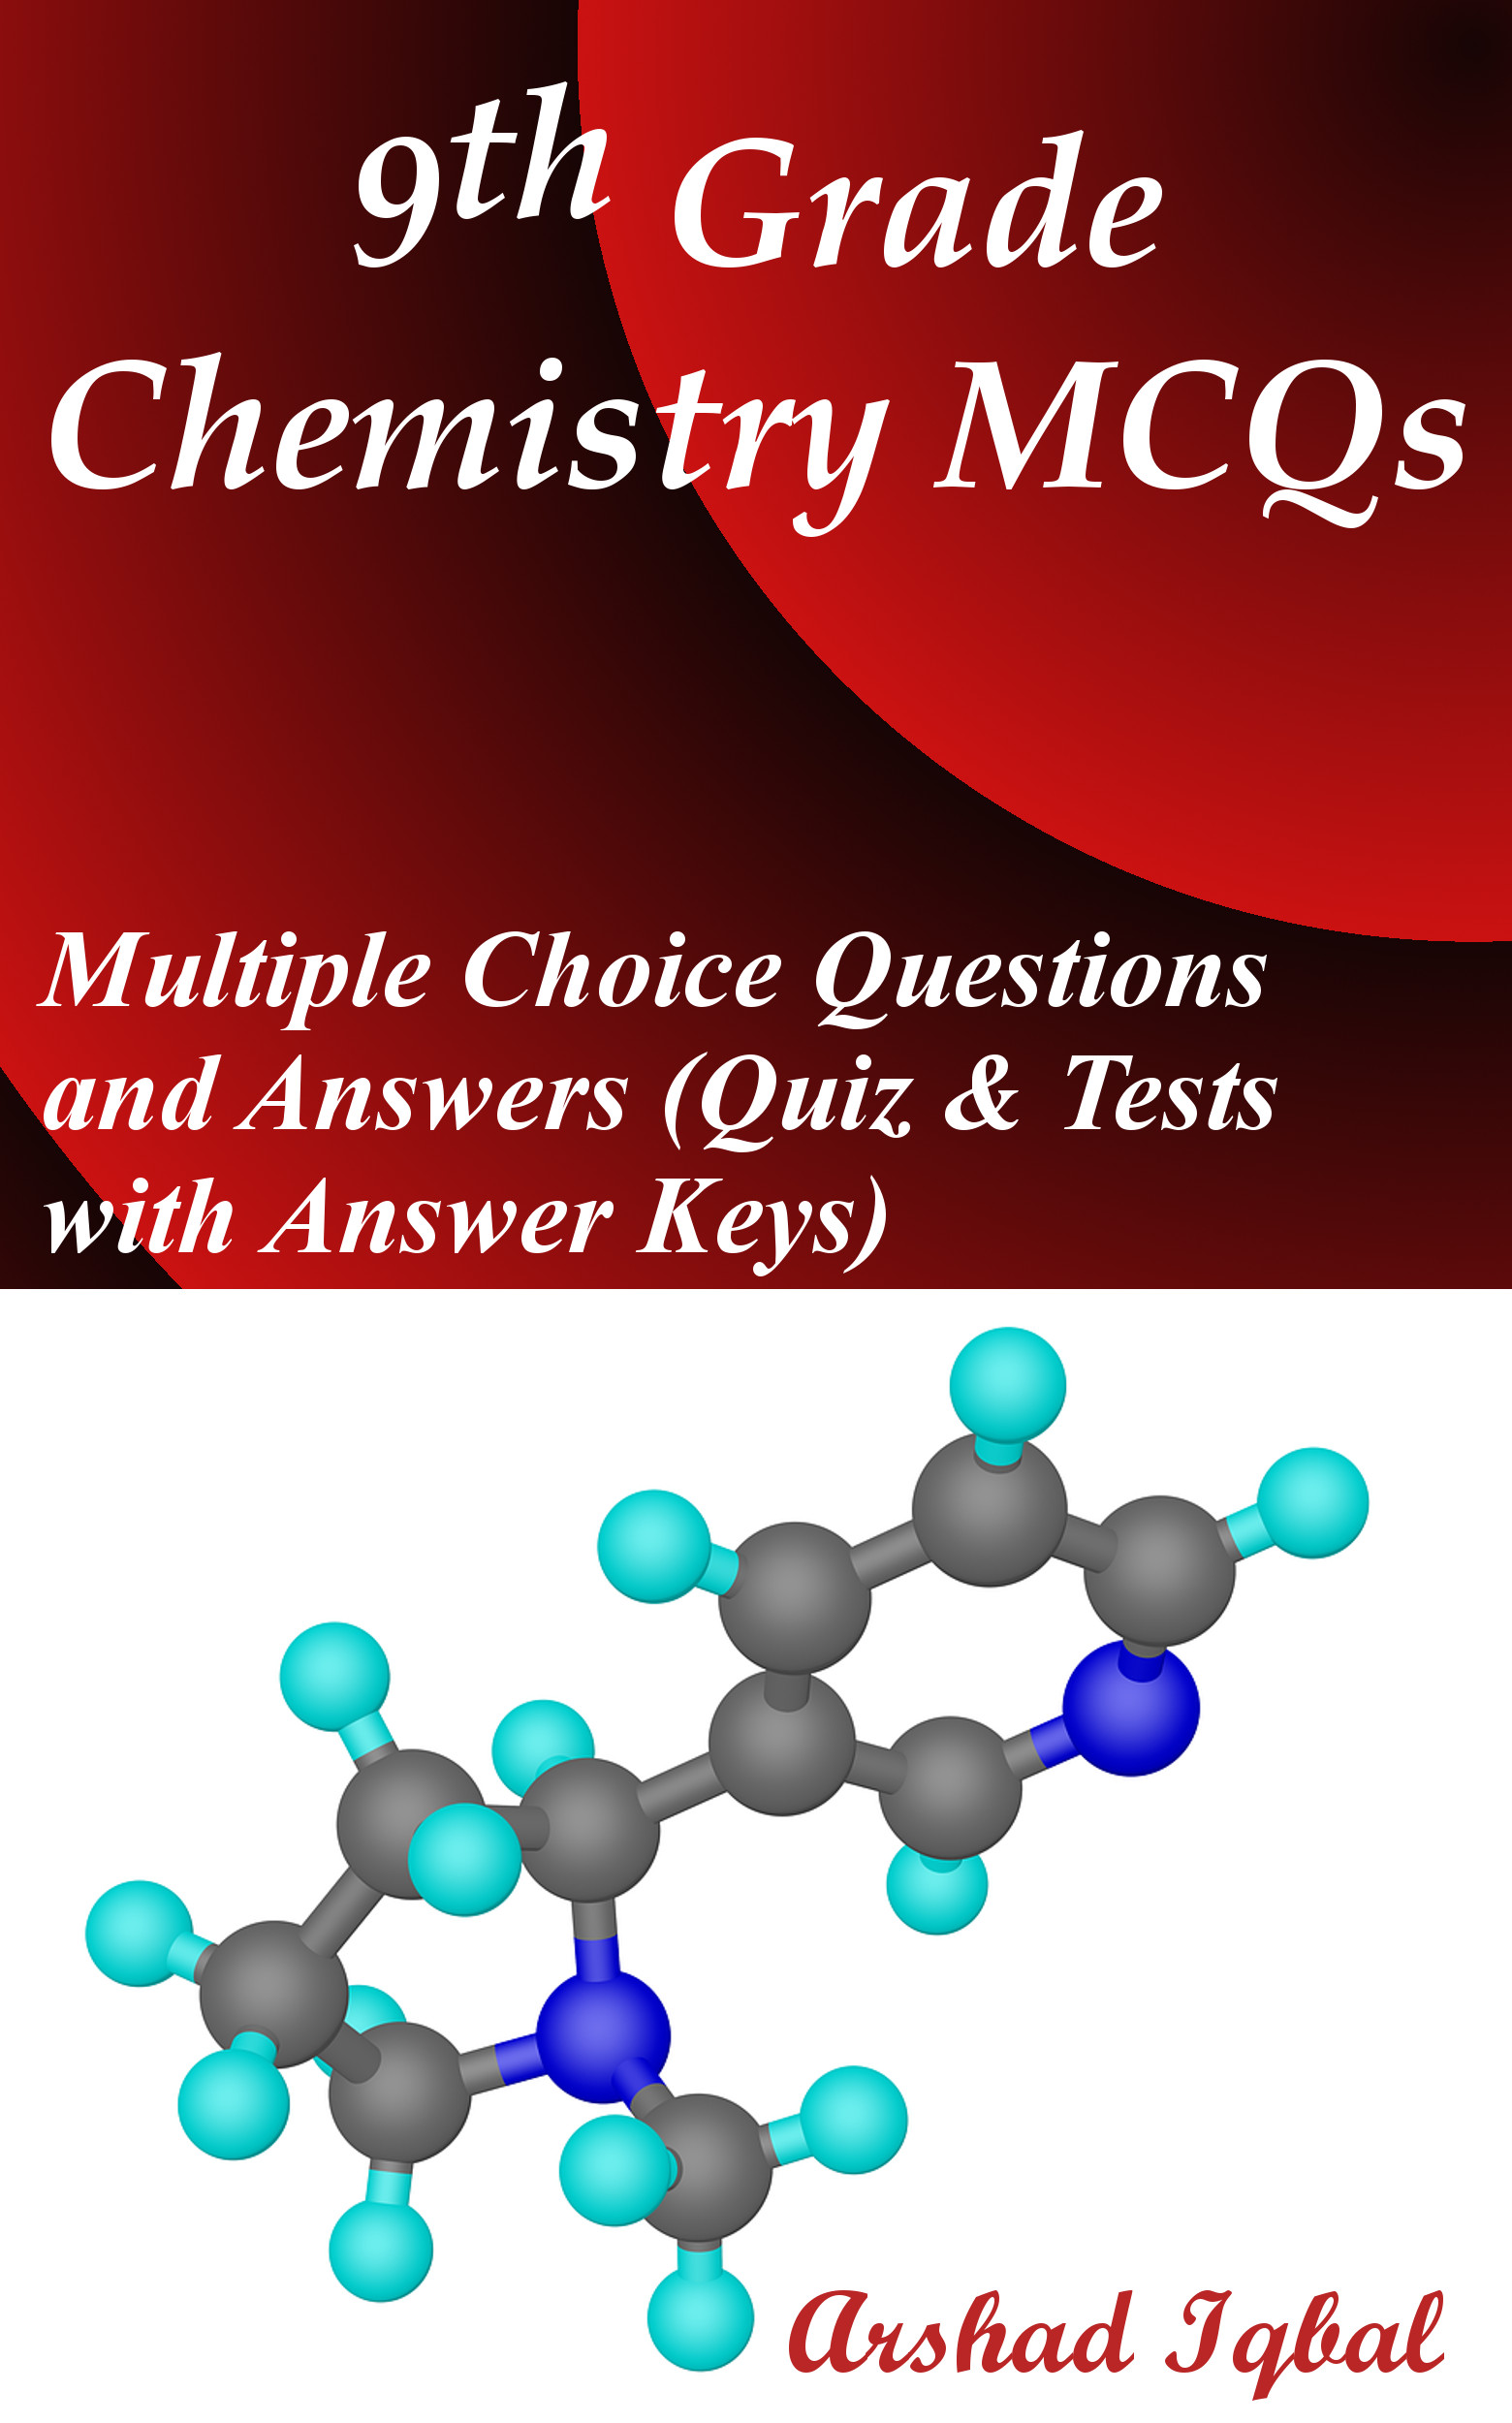 9th Grade Chemistry MCQs: Multiple Choice Questions and Answers (Quiz &  Tests with Answer Keys), an Ebook by Arshad Iqbal